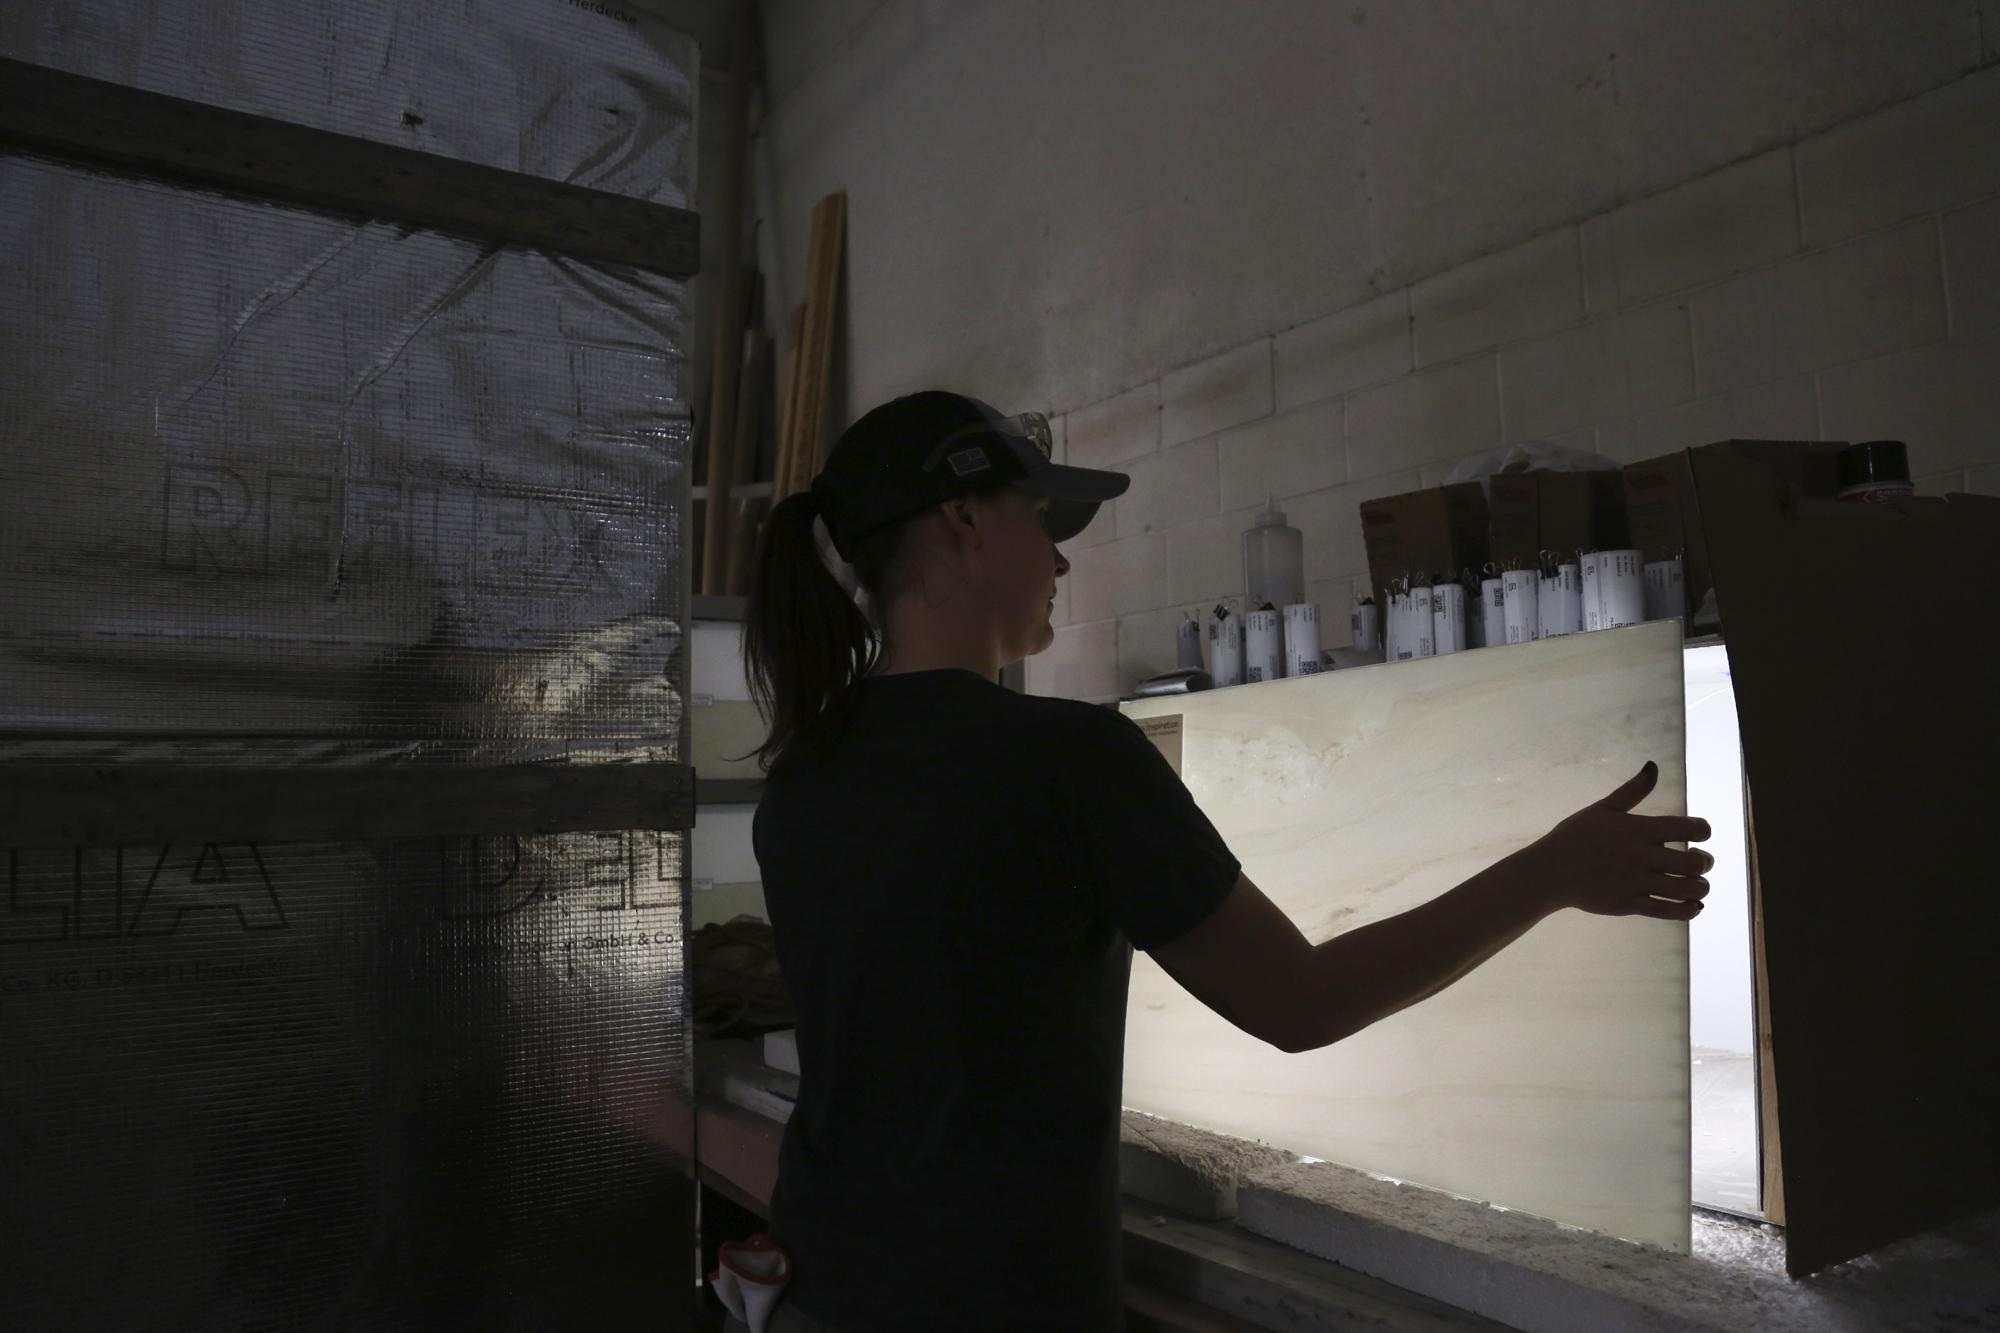 Nicole Taylor, an apprentice with MG McGrath Inc., illuminates a thin panel of marble while testing its quality on Thursday, Aug. 5, 2021, in Maplewood, Minn. The marble was mined from the same Pentelic vein in Greece that sourced the Parthenon, the ancient temple in Athens, and will be installed on the outer walls of the new St. Nicholas Greek Orthodox Church and National Shrine at ground zero in New York. The original St. Nicholas, which sat just below the World Trade Center's south tower, was the only house of worship destroyed in the Sept. 11, 2001 attacks. (AP Photo/Jessie Wardarski)